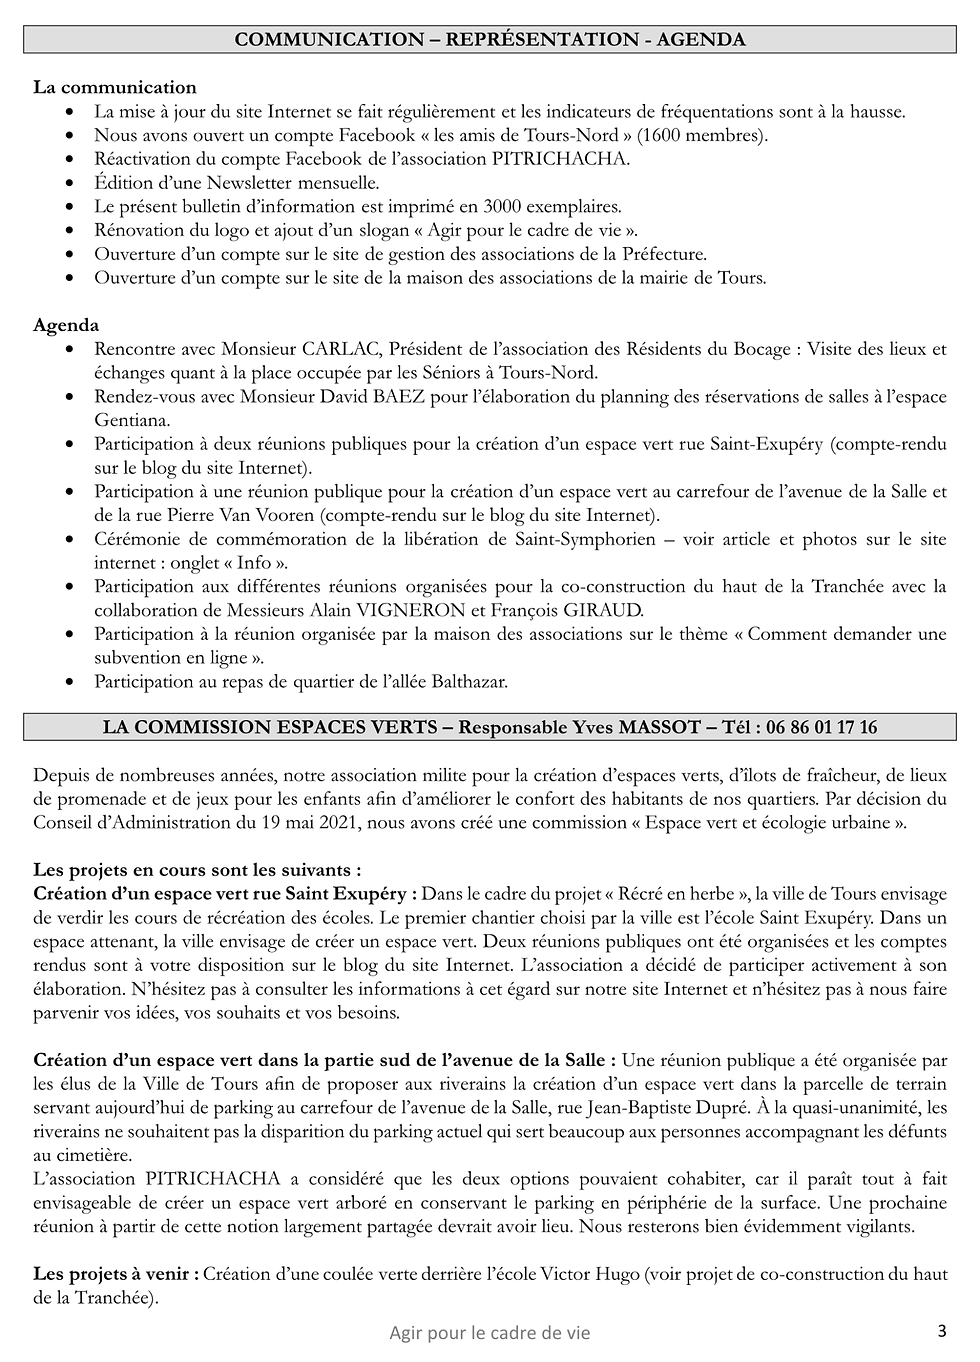 Bulletin N°25 Pitrichacha page 3.png